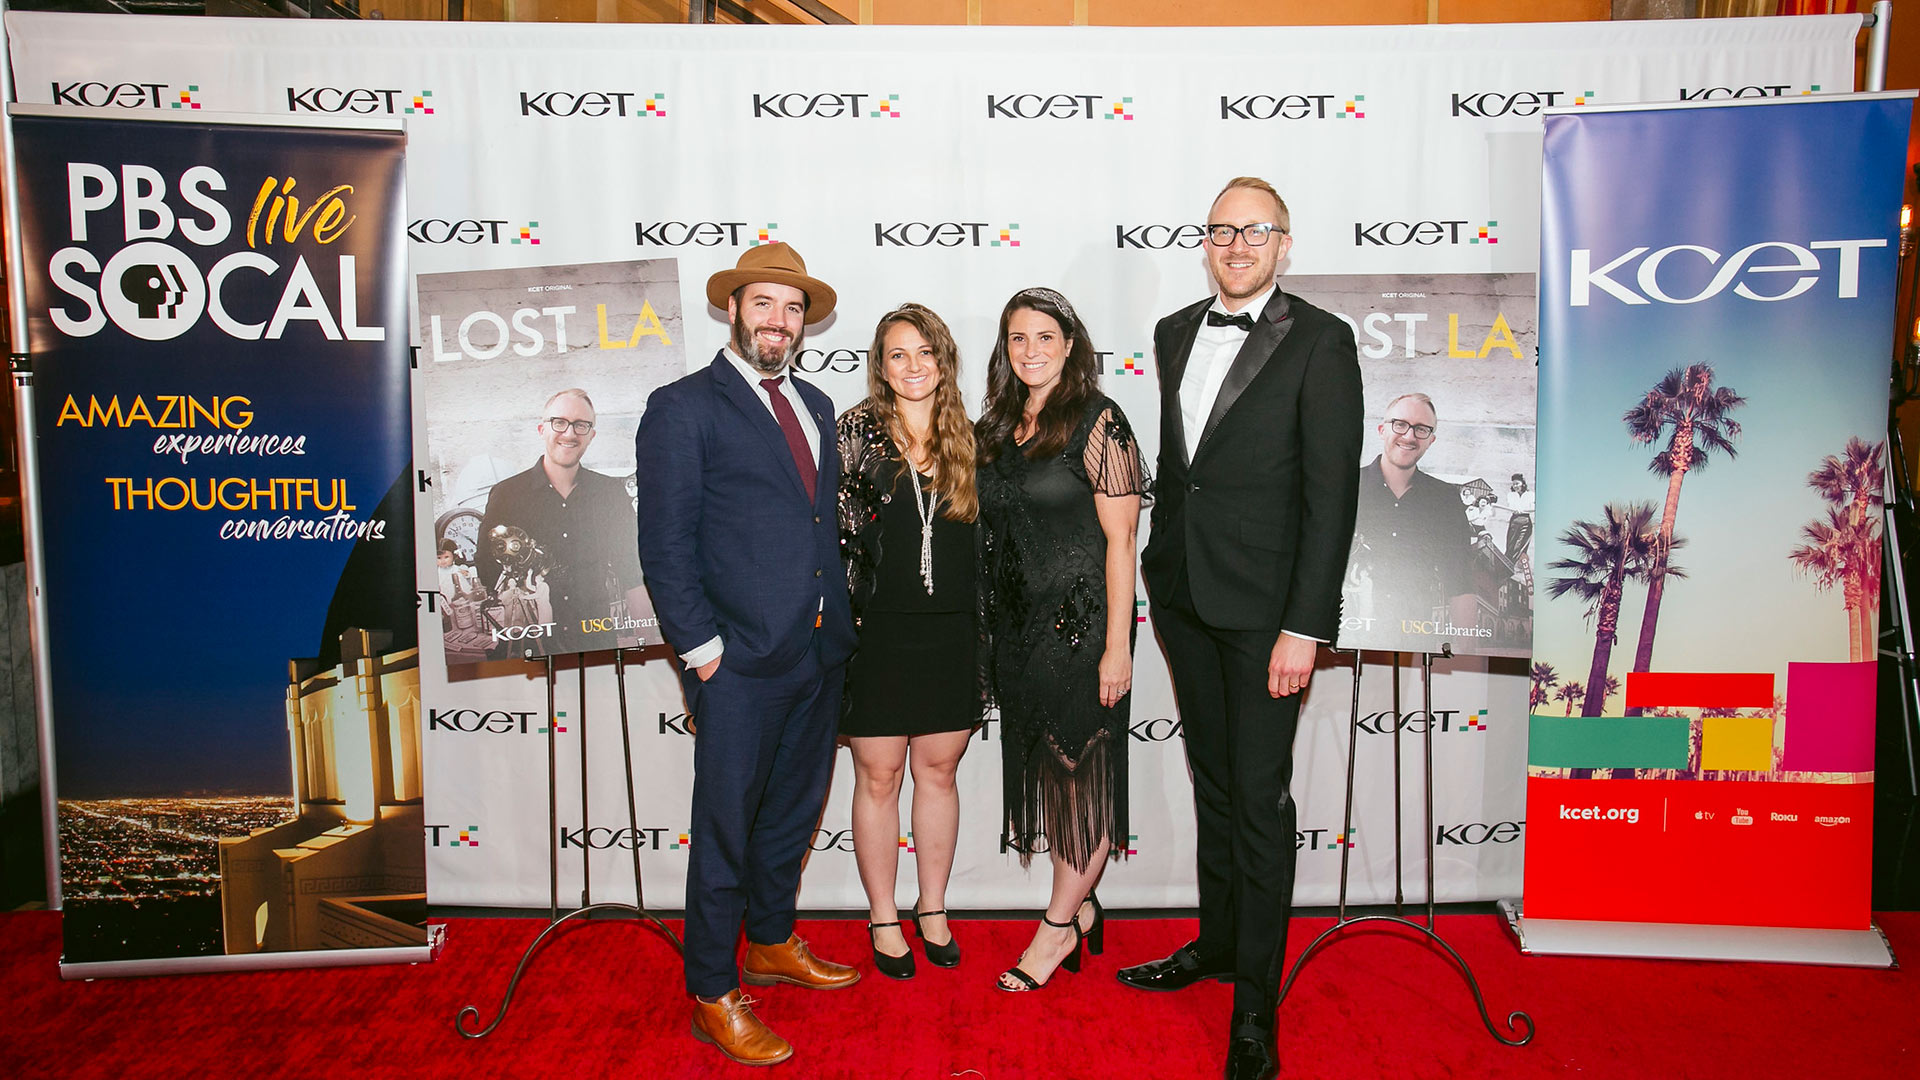 KCET's Senior Director of Production Matthew Crotty, KCET's Associate Director of Production Angela Boisvert, KCET's Chief Operating Officer Jamie Annunzio Myers and Host of LOST LA Nathan Masters arrive at KCET's LOST LA event at The Edison on October 22